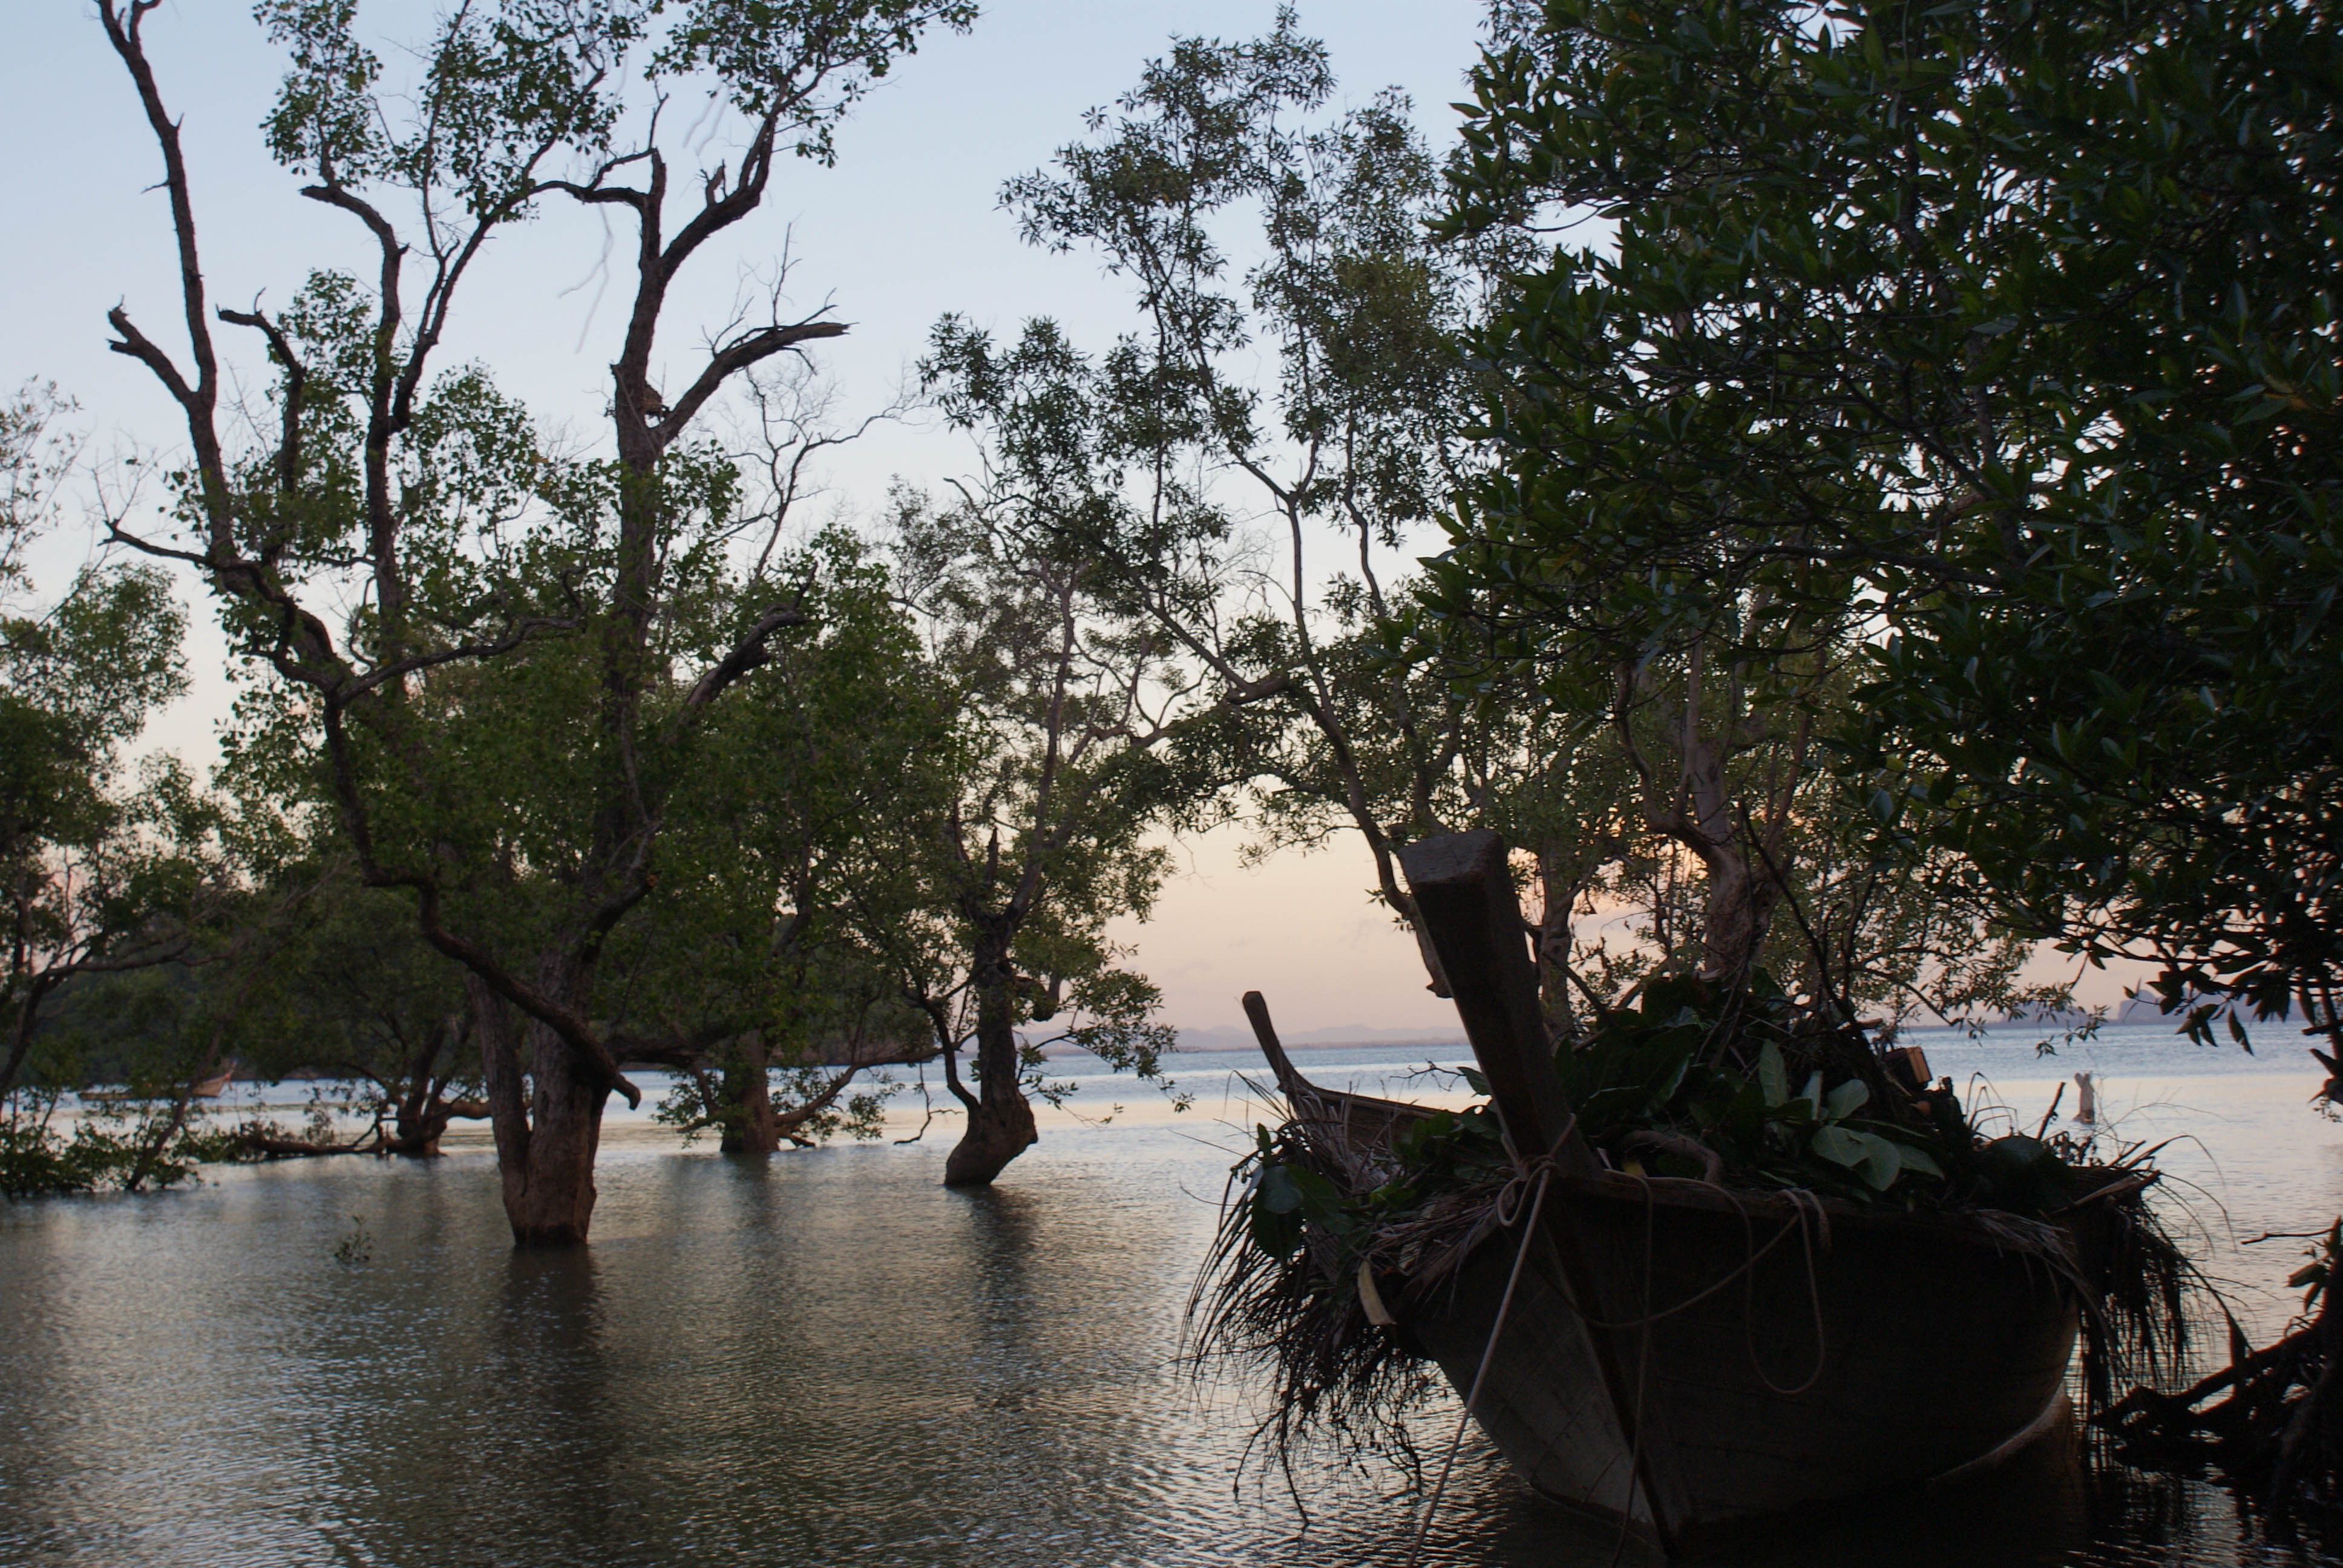 Postcards from Thailand: Railay, Krabi Photo Journal - Gorgeous sunset in the mangroves